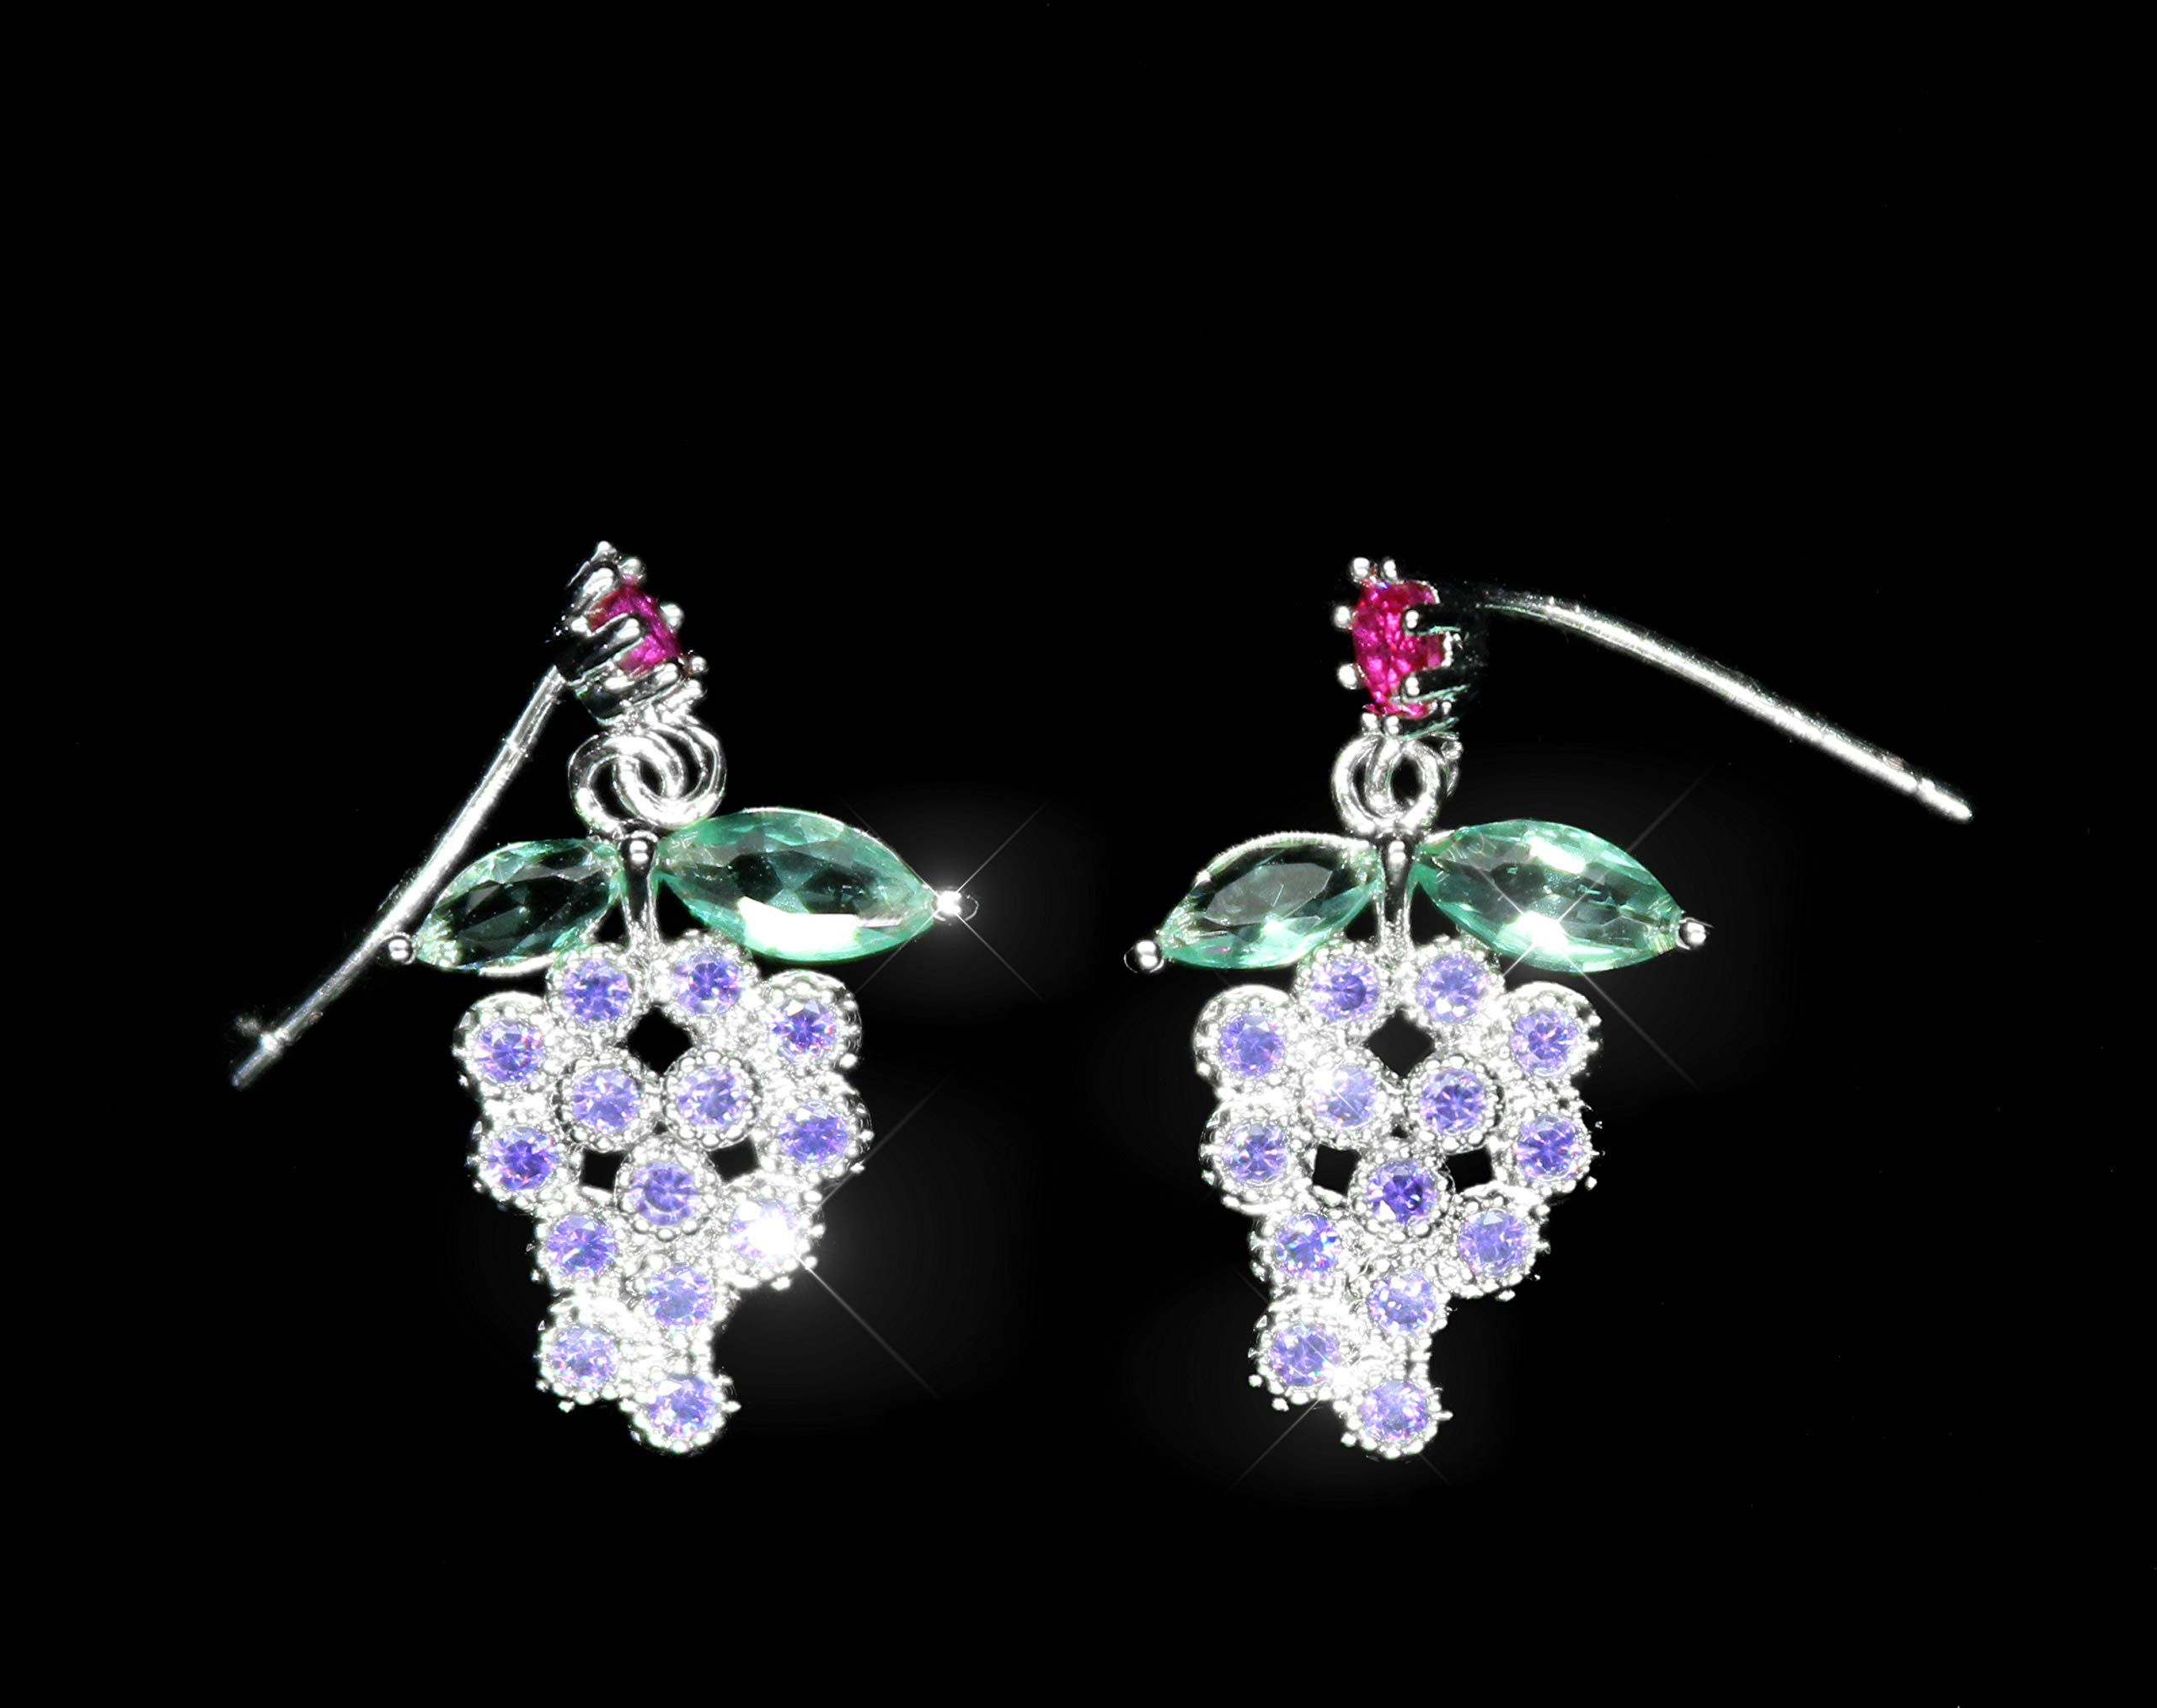 Goddess Area Elegant Silver Grape Earrings Necklace for Women Jewelry Beach Party Daily with Gift Box(Grape)